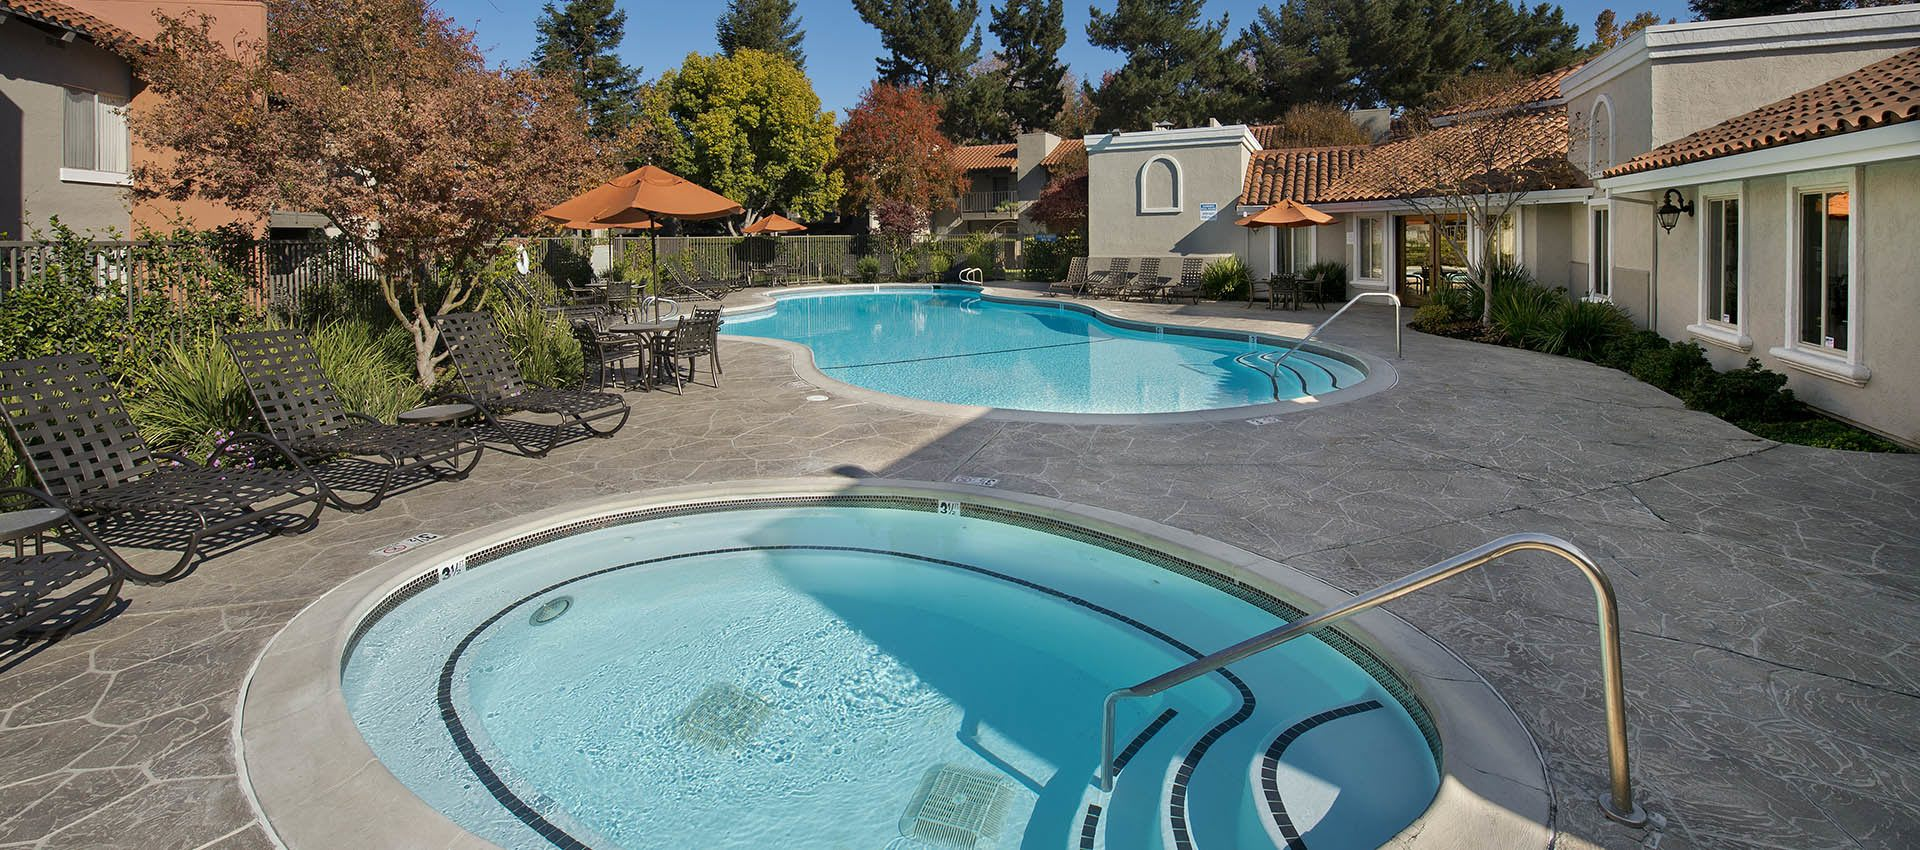 Expansive Pool Deck With Clubhouse at La Valencia Apartment Homes in Campbell, CA